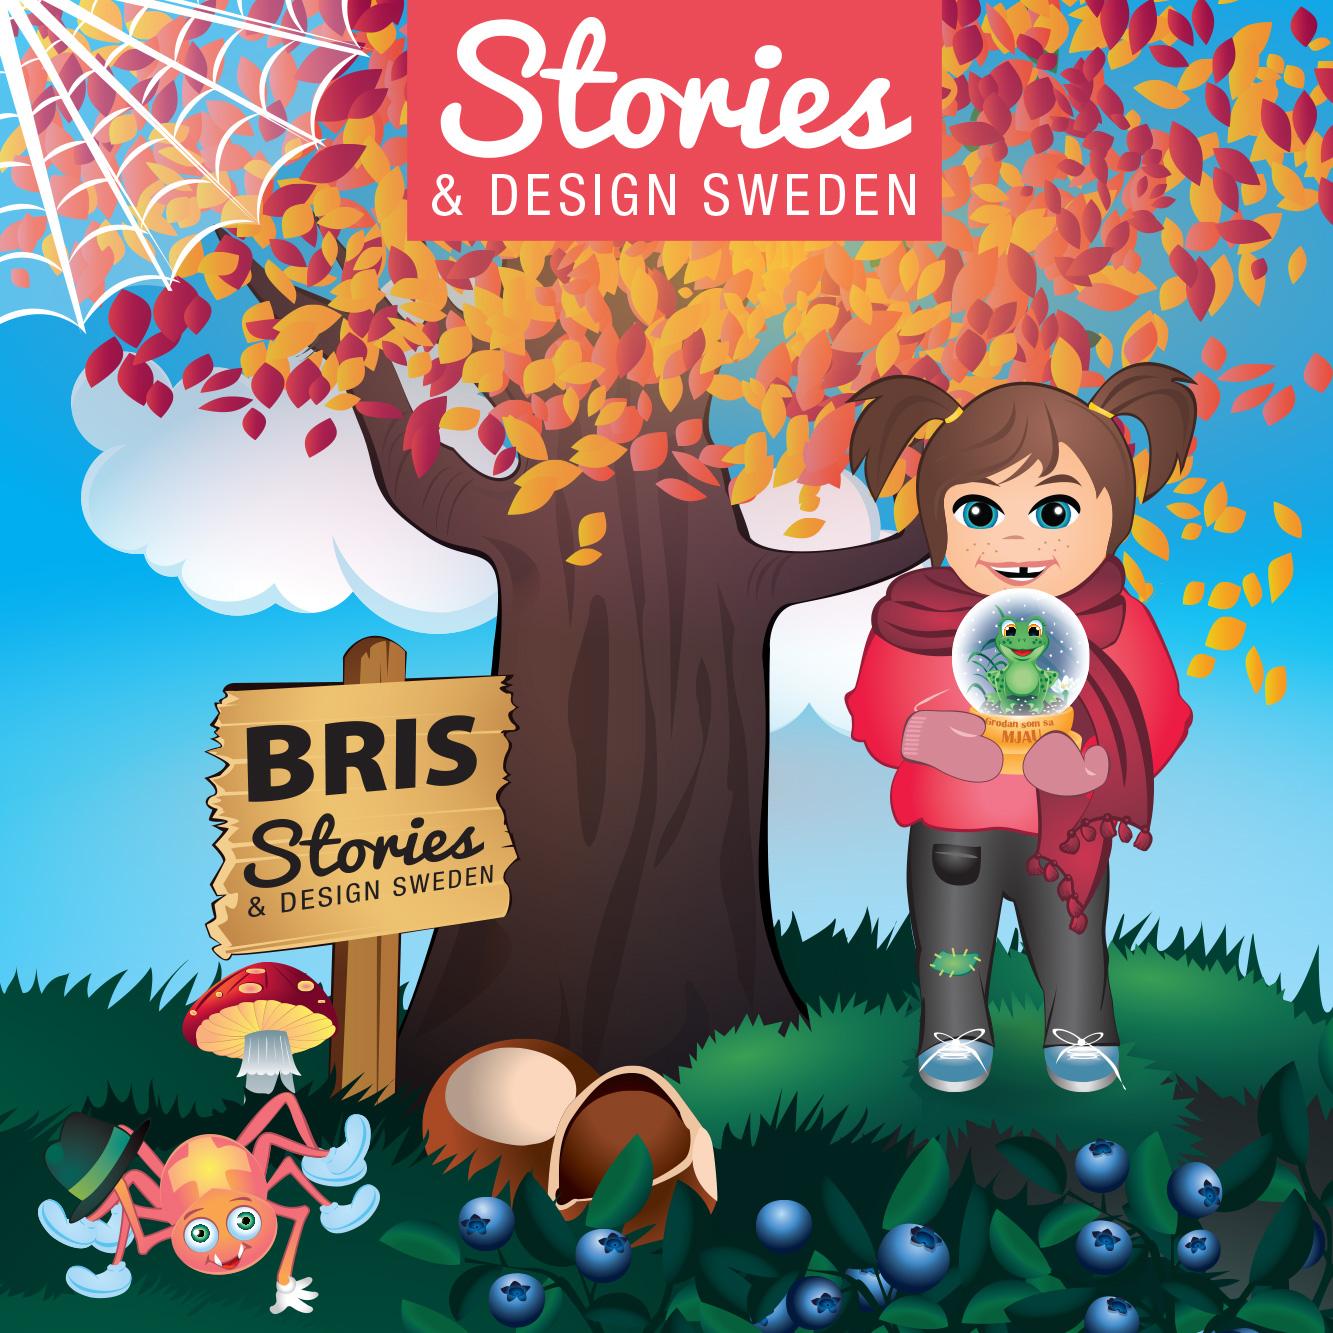 Stories & Design blir sponsor till Bris